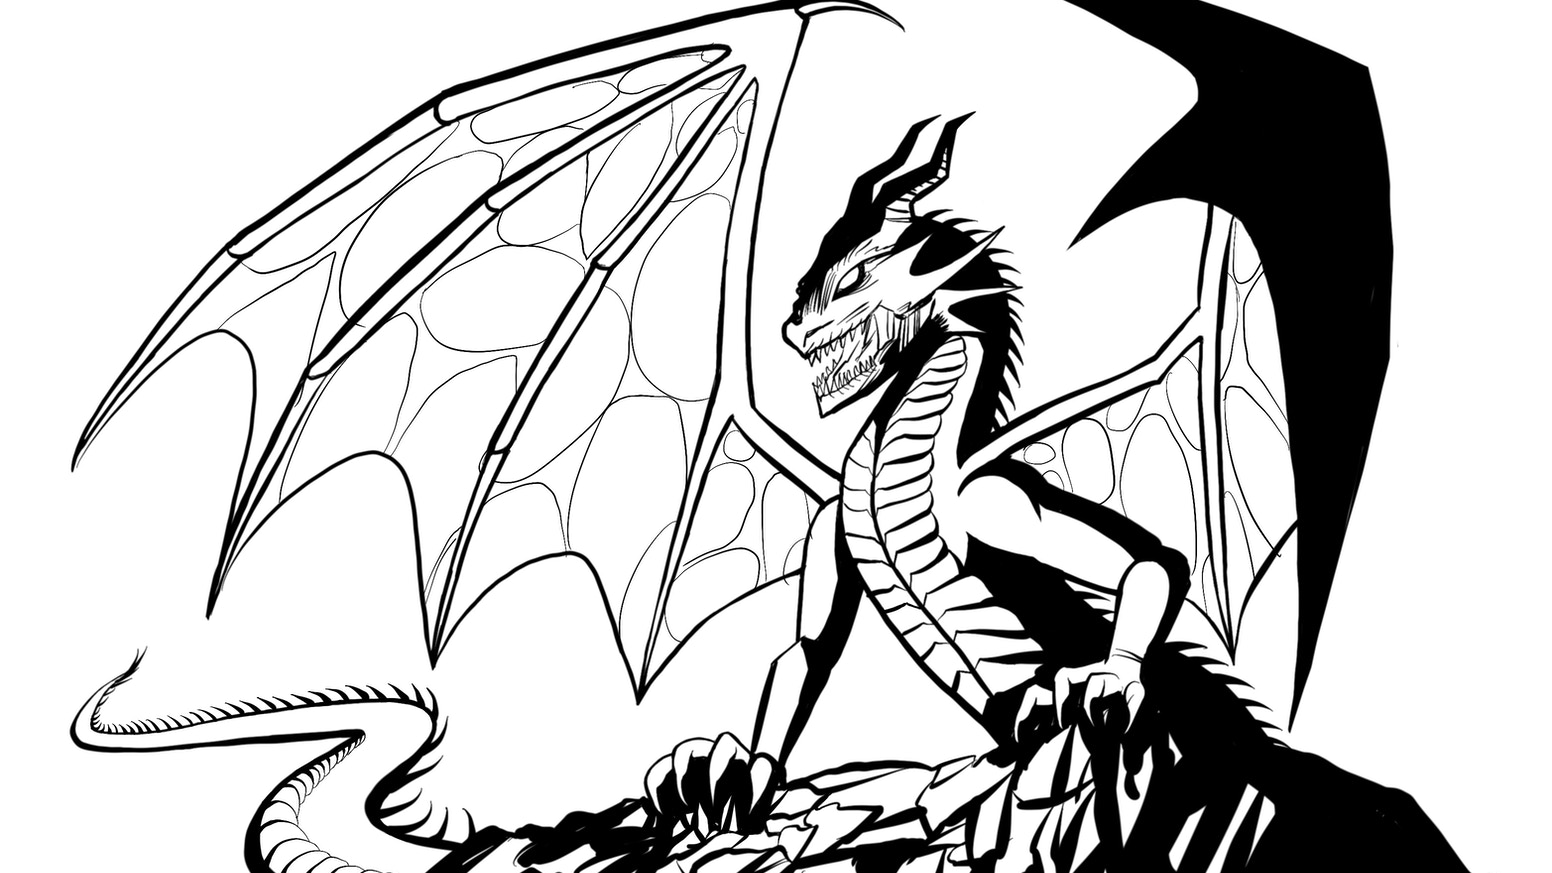 Dragon Colouring Book 52 Pages Infinite Combinations By Simon Birks Kickstarter